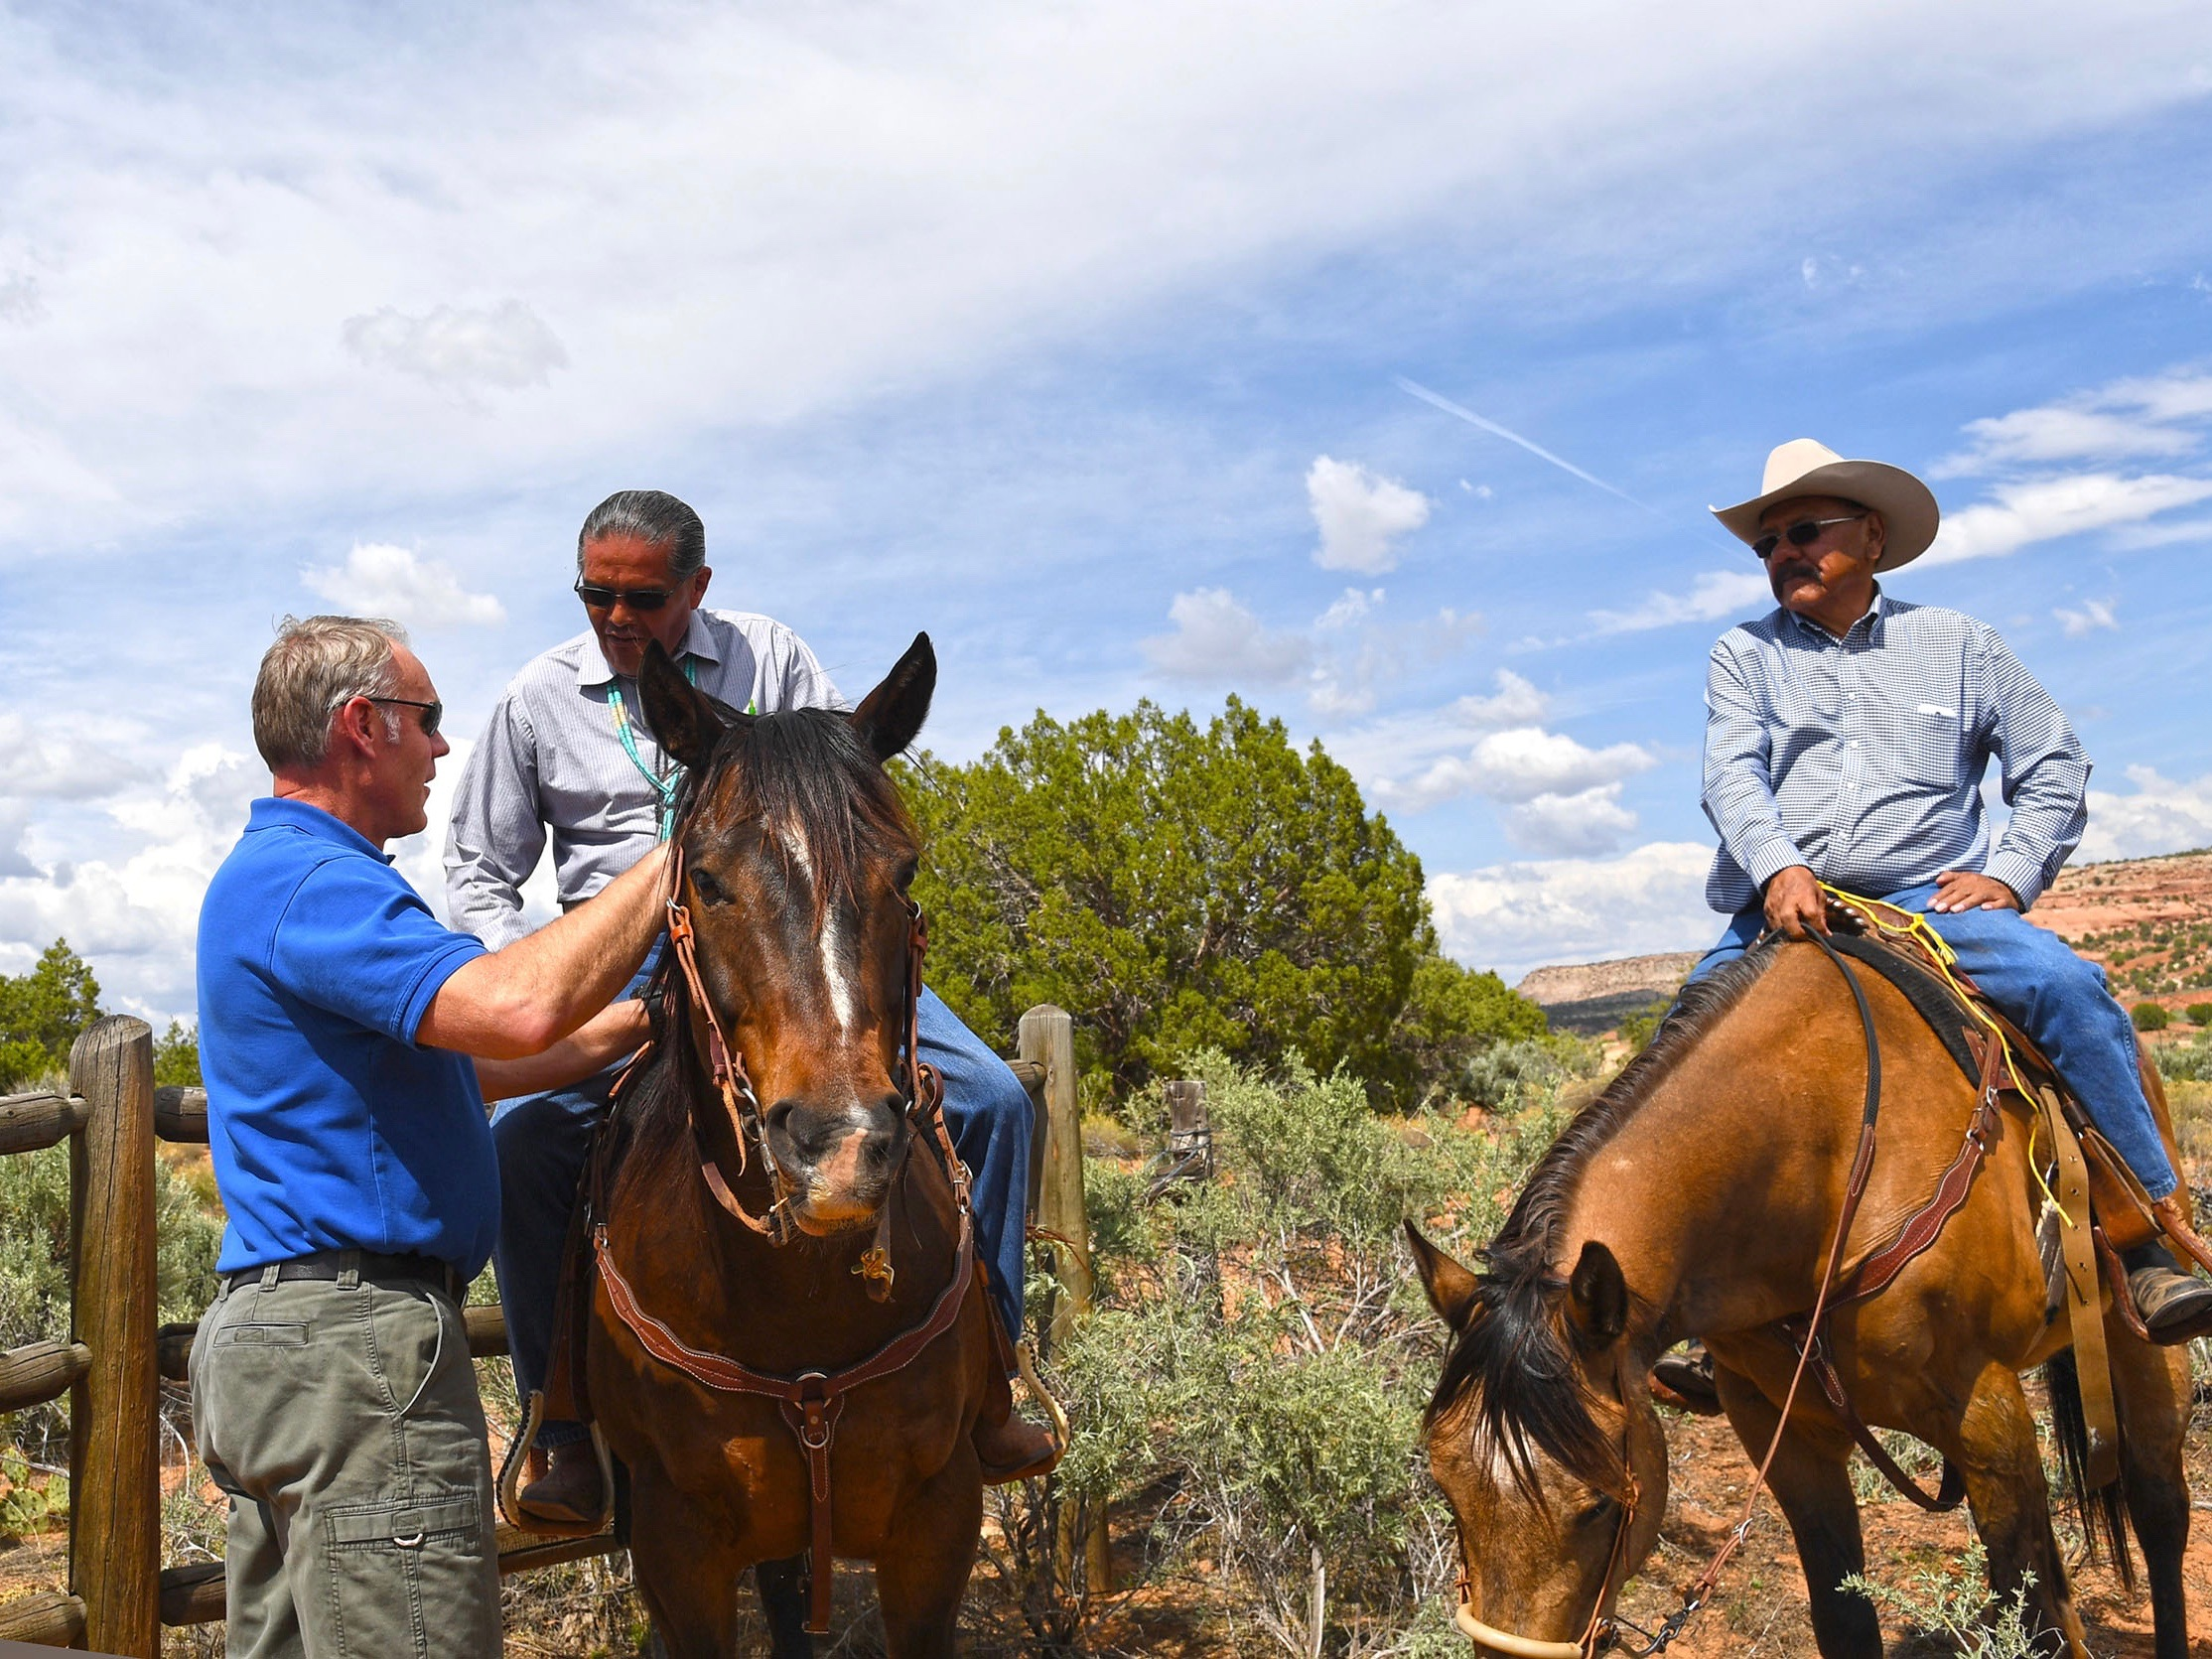 Secretary Zinke vows support for sovereignty after 'off-ramp' comments about trust lands